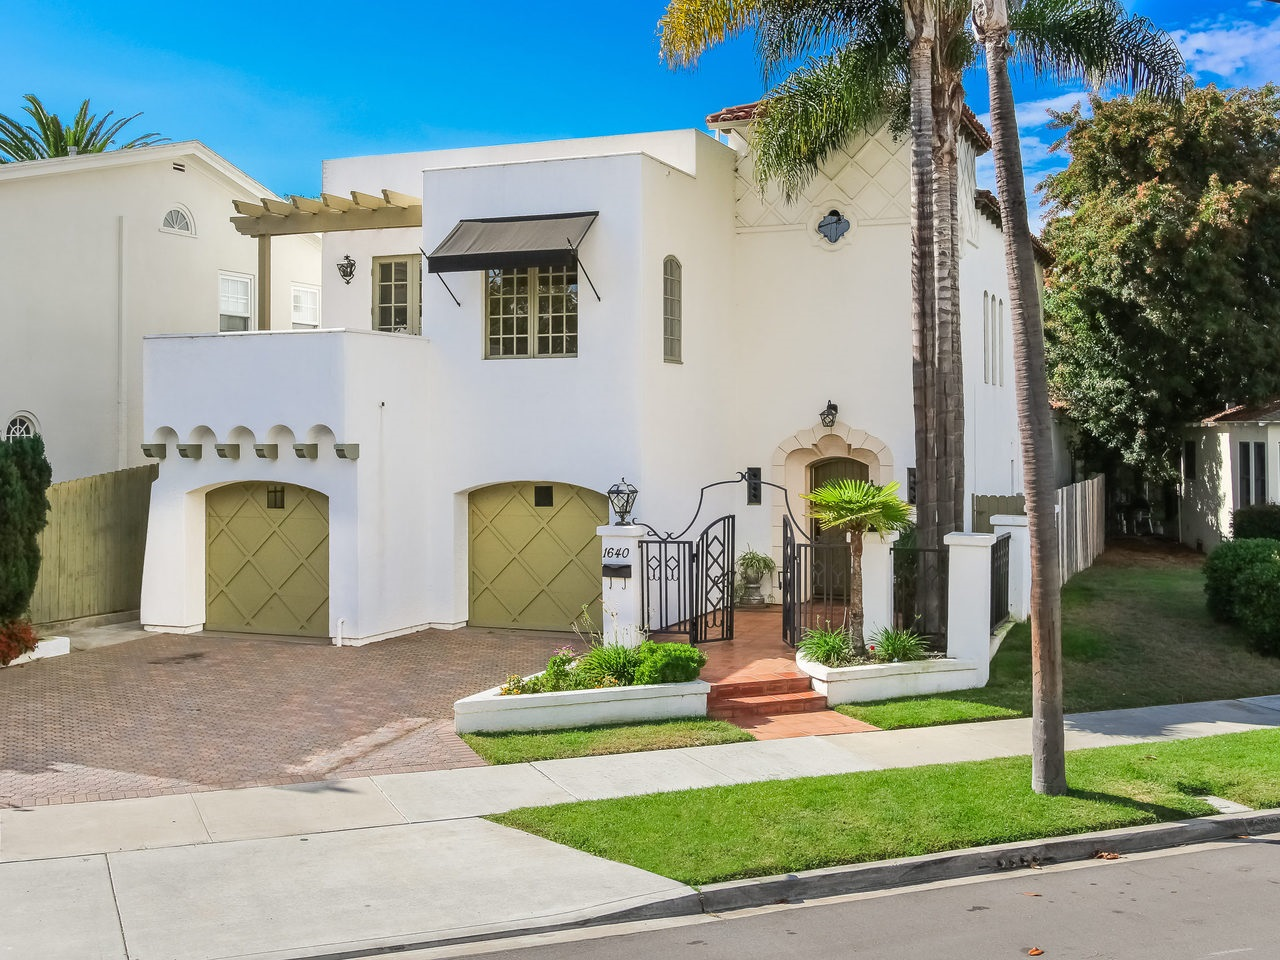 Detached, Mediterranean/Spanish - Coronado, CA (photo 2)